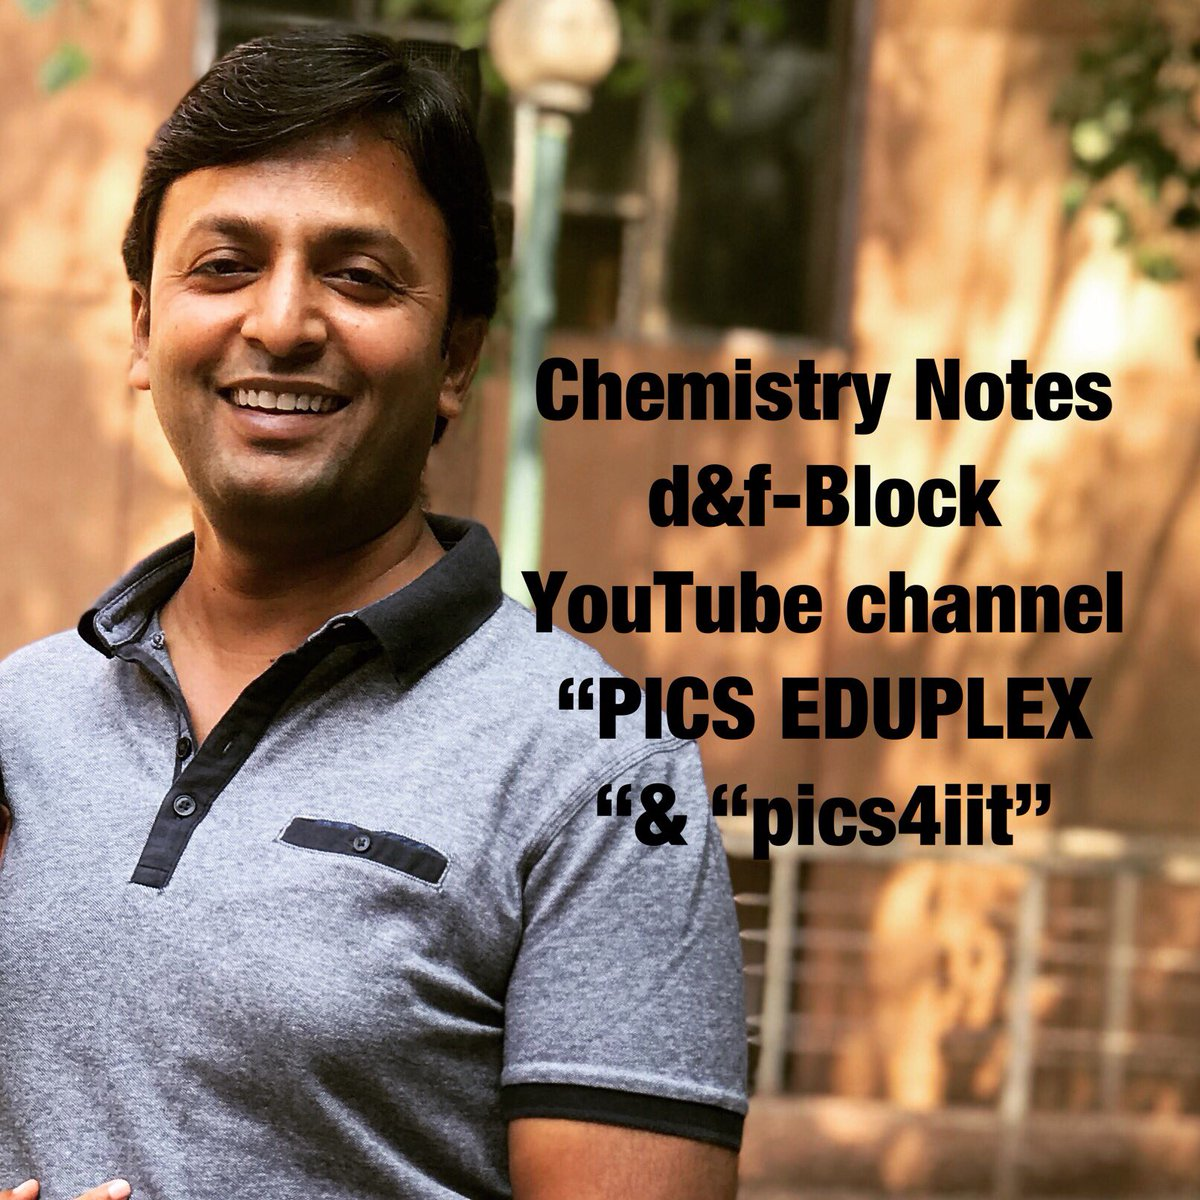 #Chemistry #notes  Link on #YouTube  https:// youtu.be/X8QSFaDG4HI  &nbsp;  <br>http://pic.twitter.com/QEC8hfFcCM